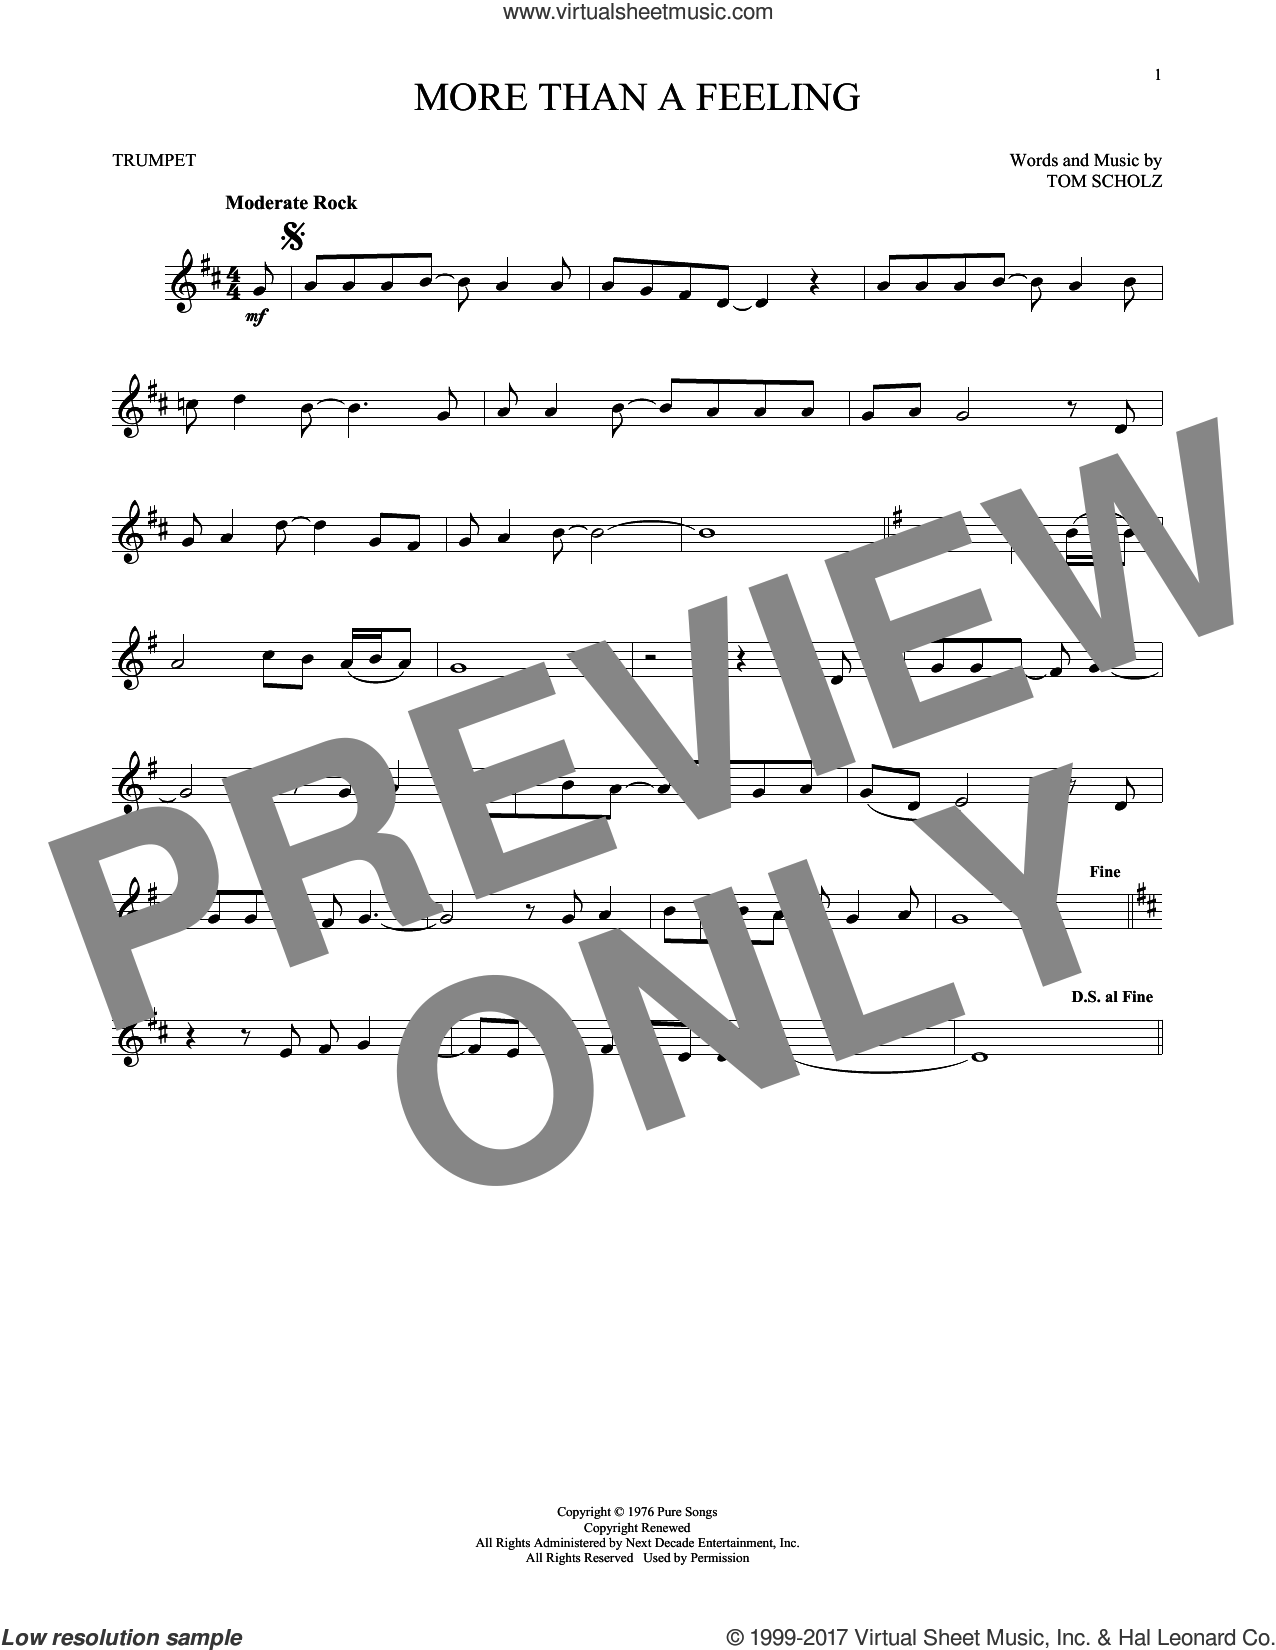 More Than A Feeling sheet music for trumpet solo by Boston and Tom Scholz, intermediate skill level